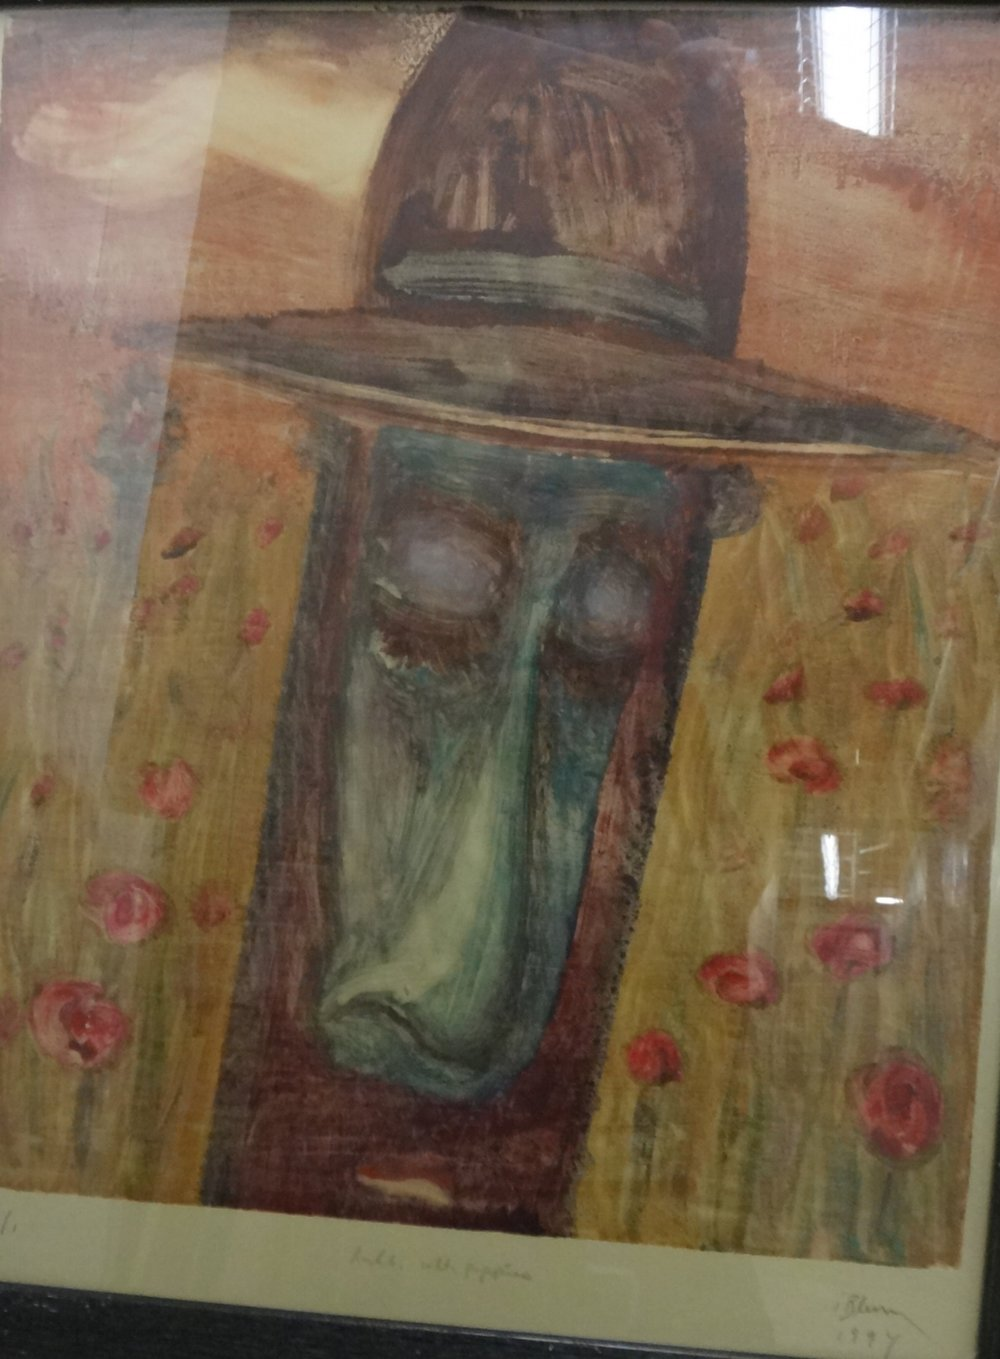 Title: Rabbi with Poppies  Medium: 1/1 Monoprint  Dimensions: Contact for Inquiry  Framed: Yes  Price: Contact for Inquiry